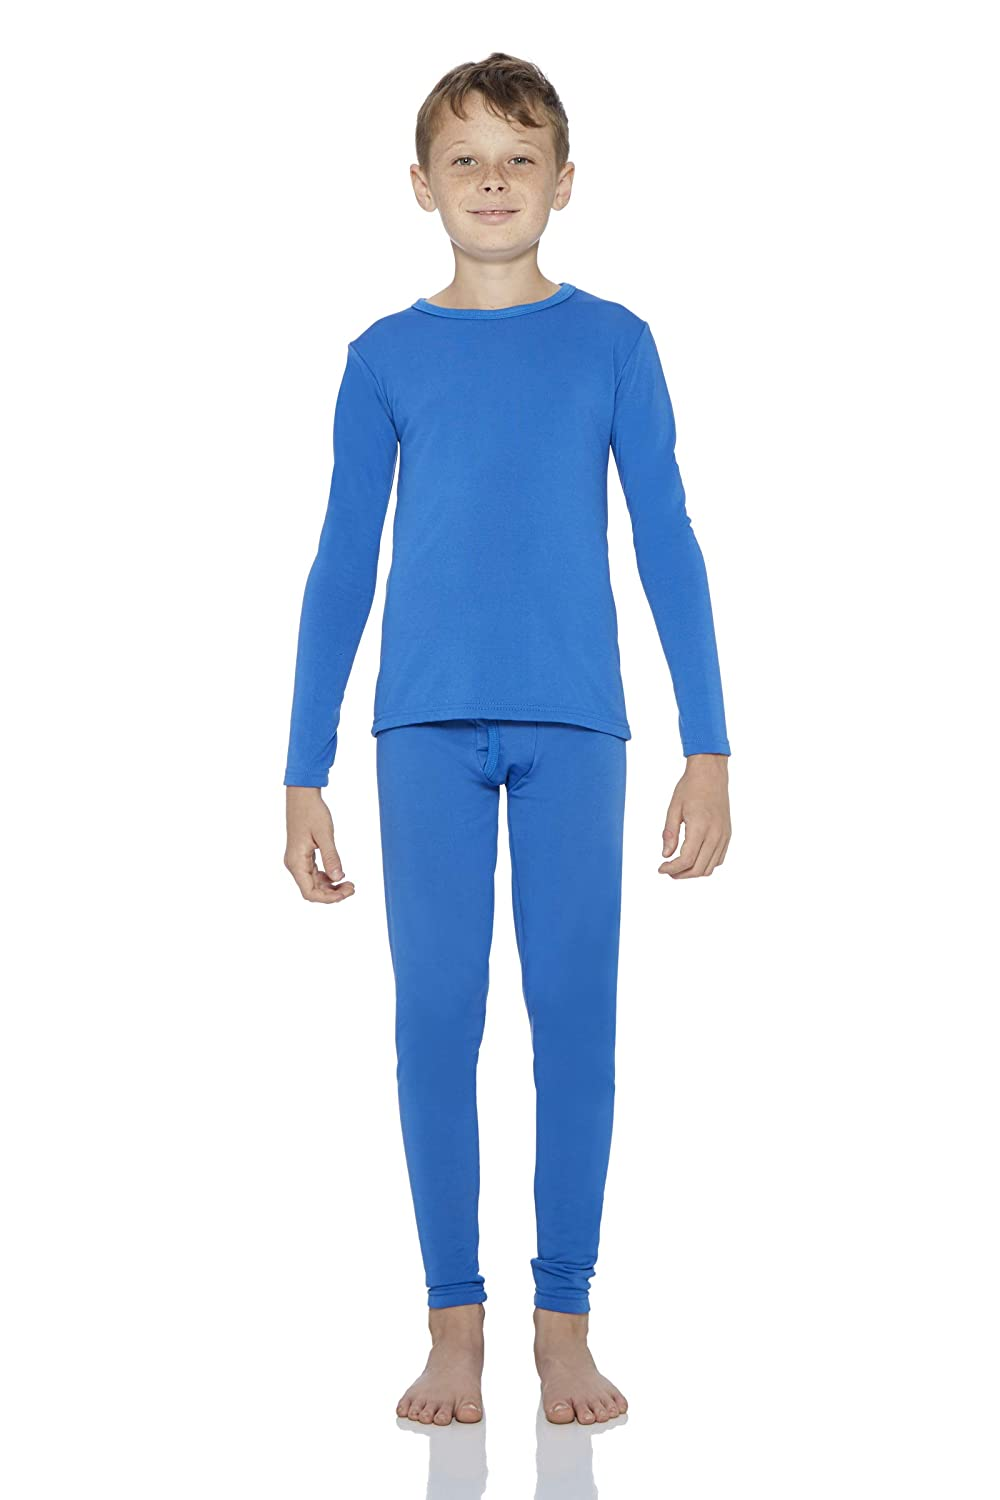 Rocky Thermal Underwear for Boys Fleece Lined Thermals Kids Base Layer Long John Set